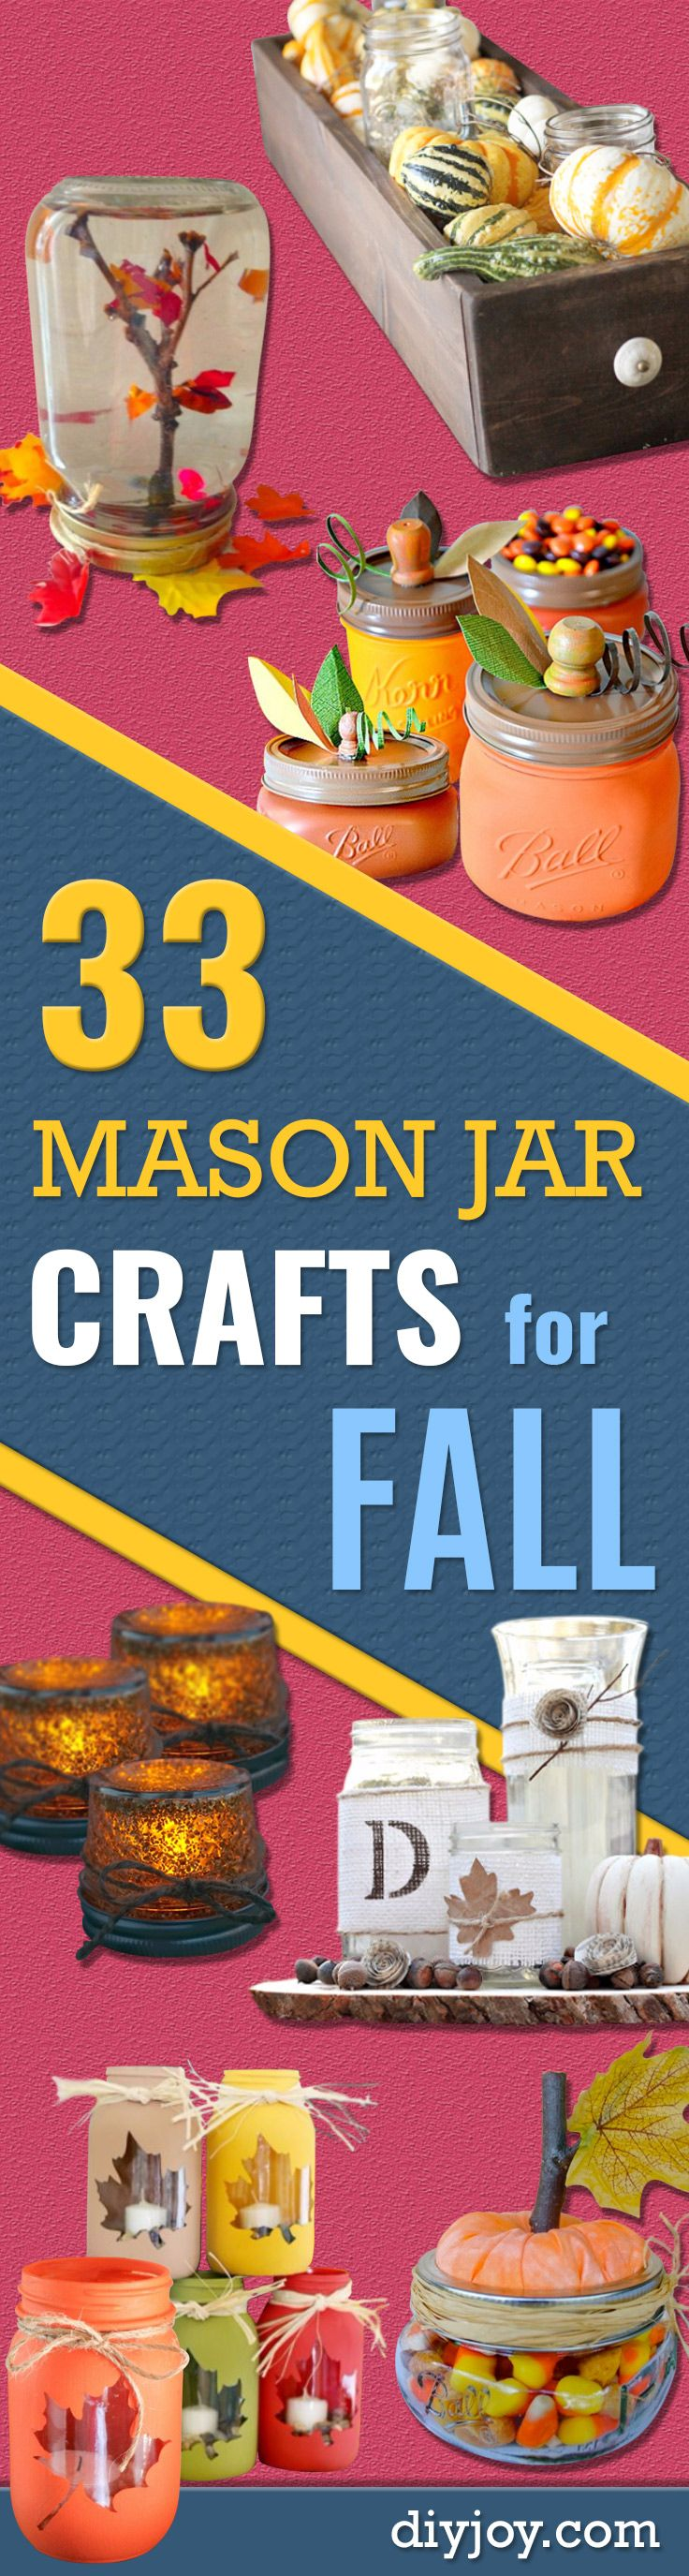 Best Mason Jar Crafts for Fall - DIY Mason Jar Ideas for Centerpieces, Wedding Decorations, Homemade Gifts, Craft Projects with Leaves, Flowers and Burlap, Painted Art, Candles and Luminaries for Cool Home Decor http://diyjoy.com/mason-jar-crafts-fall                                                                                                                                                                                 More